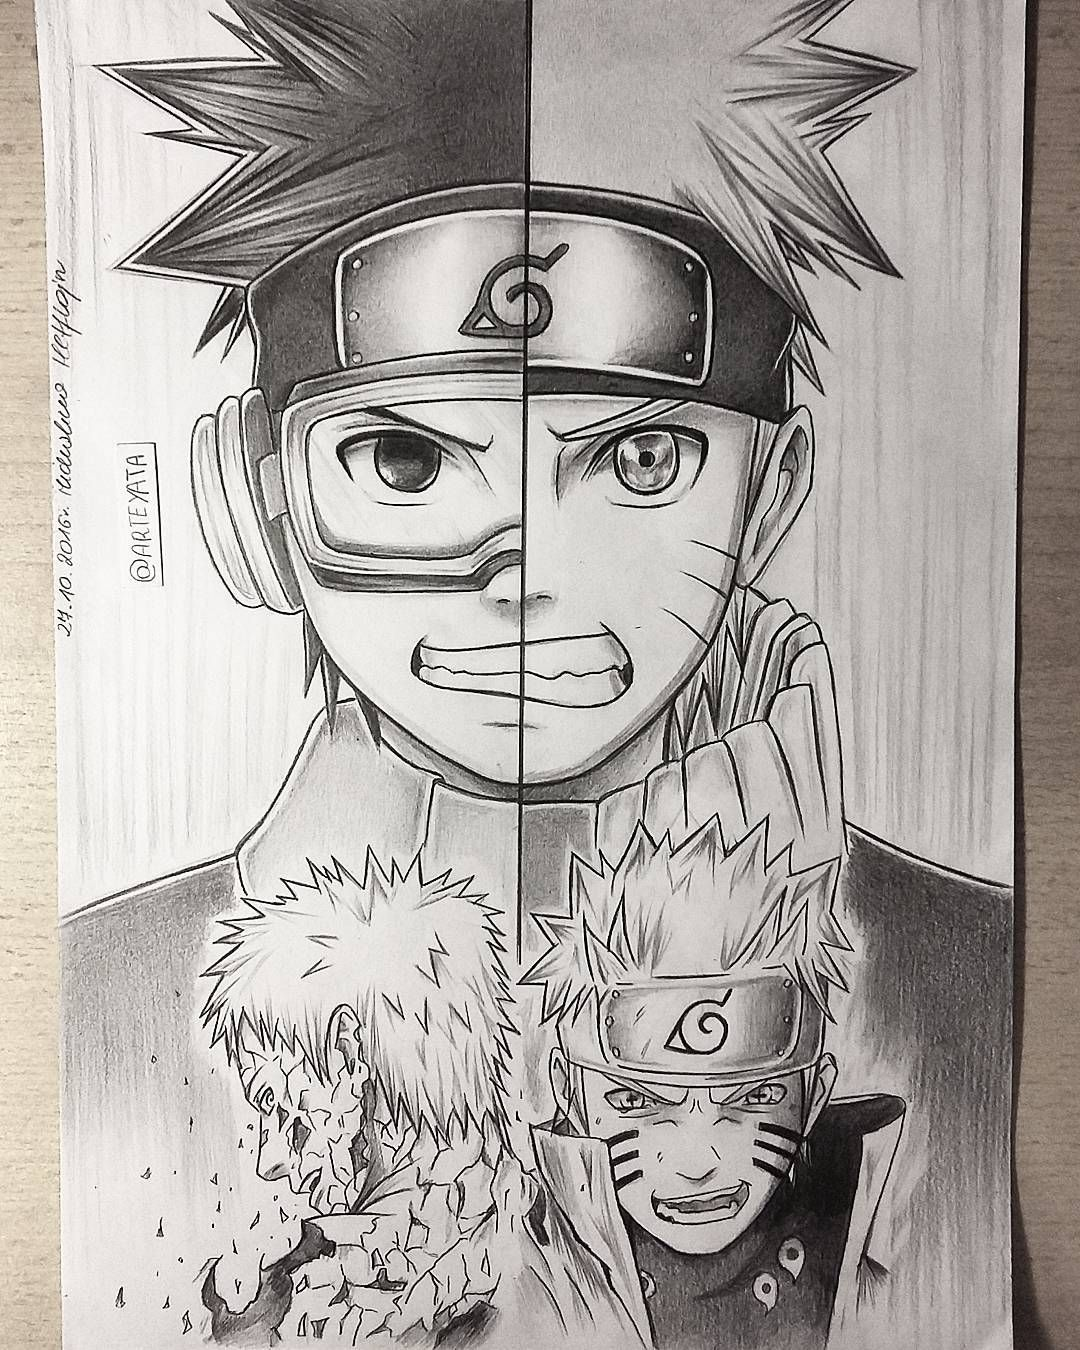 9 265 Likes 39 Comments Naruto Naaruto Uzumaki On Instagram